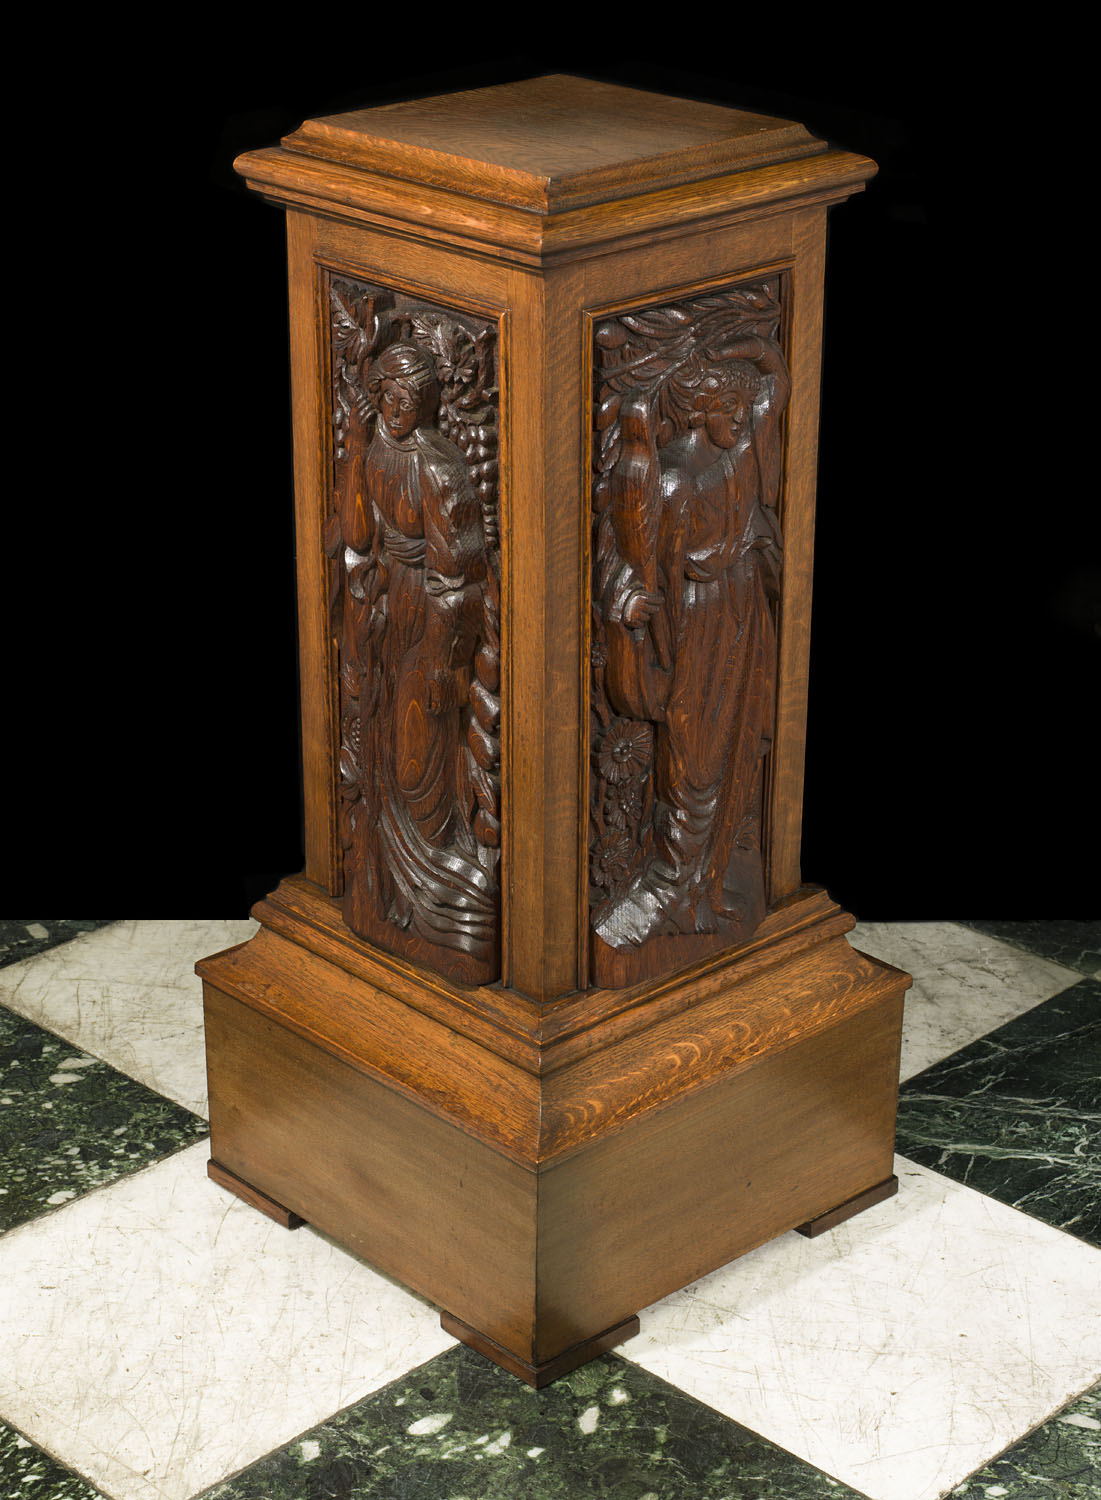 An antique Arts and Crafts carved oak pedestal